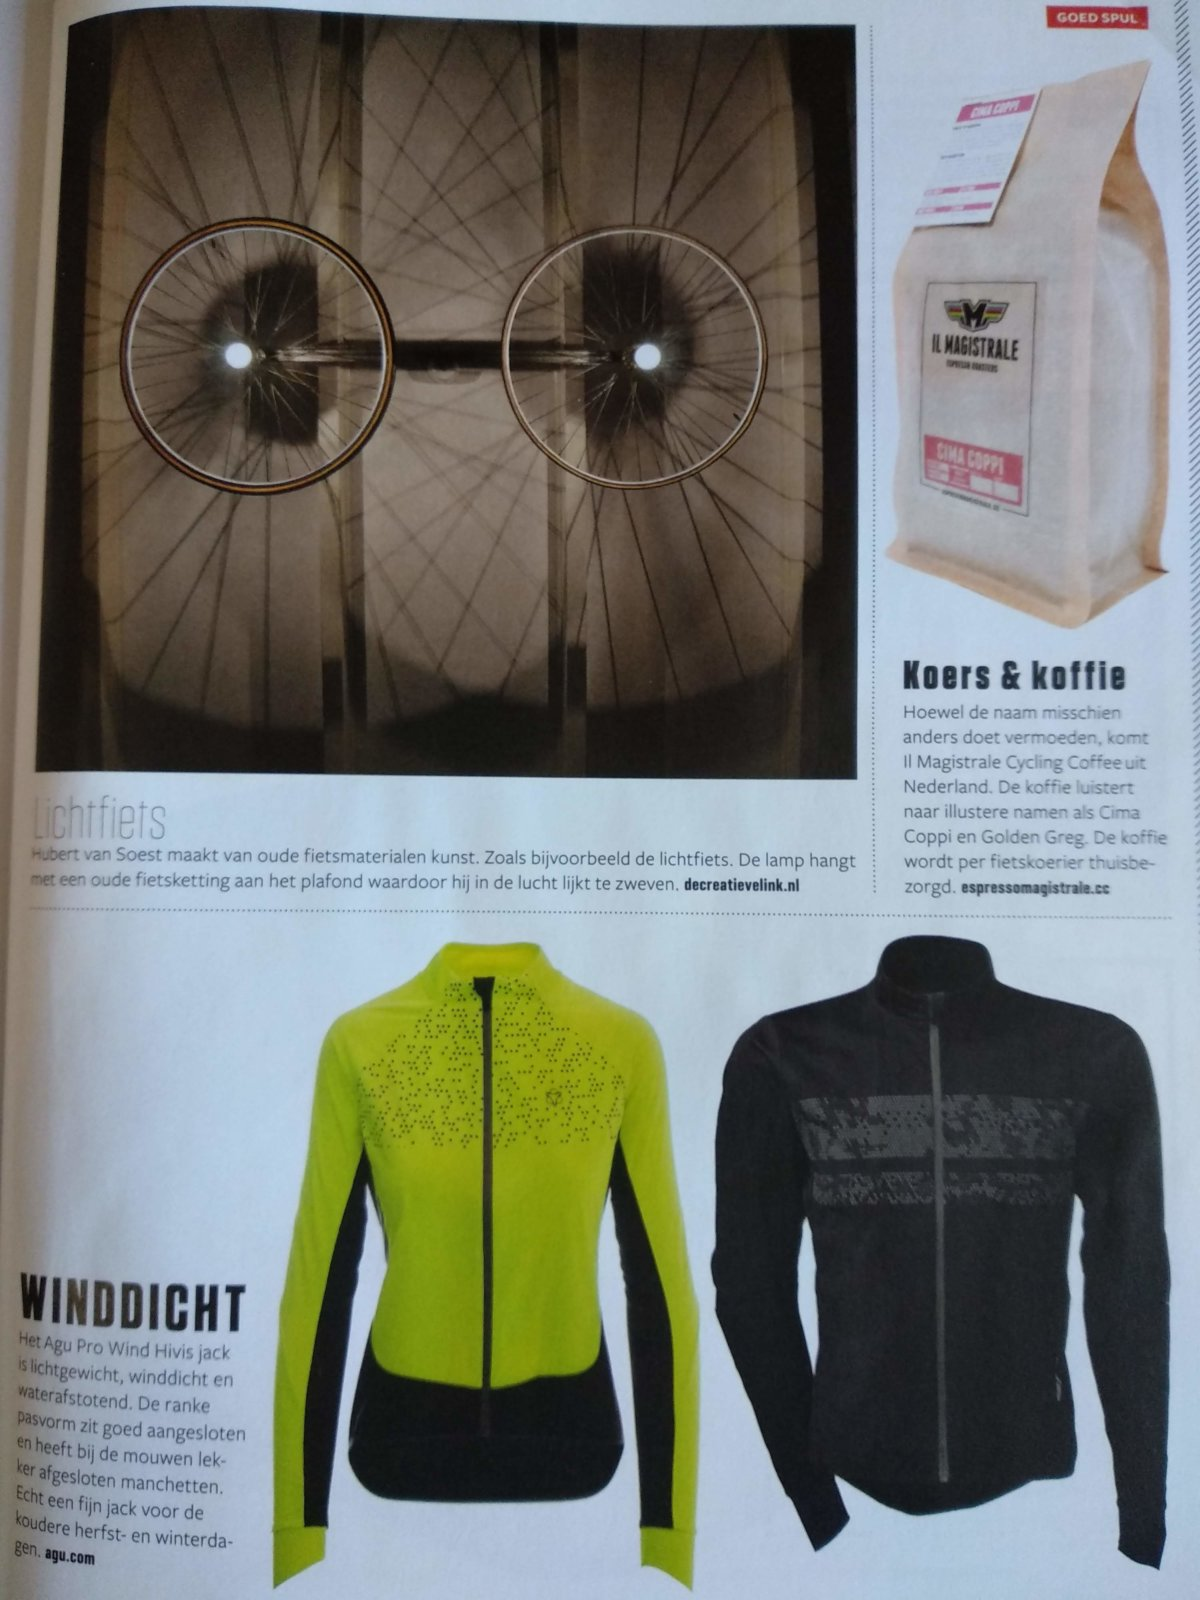 Lichtfiets Made By Decreatievelink In Bicycling Magazine Nr 3 Jaargang 2017